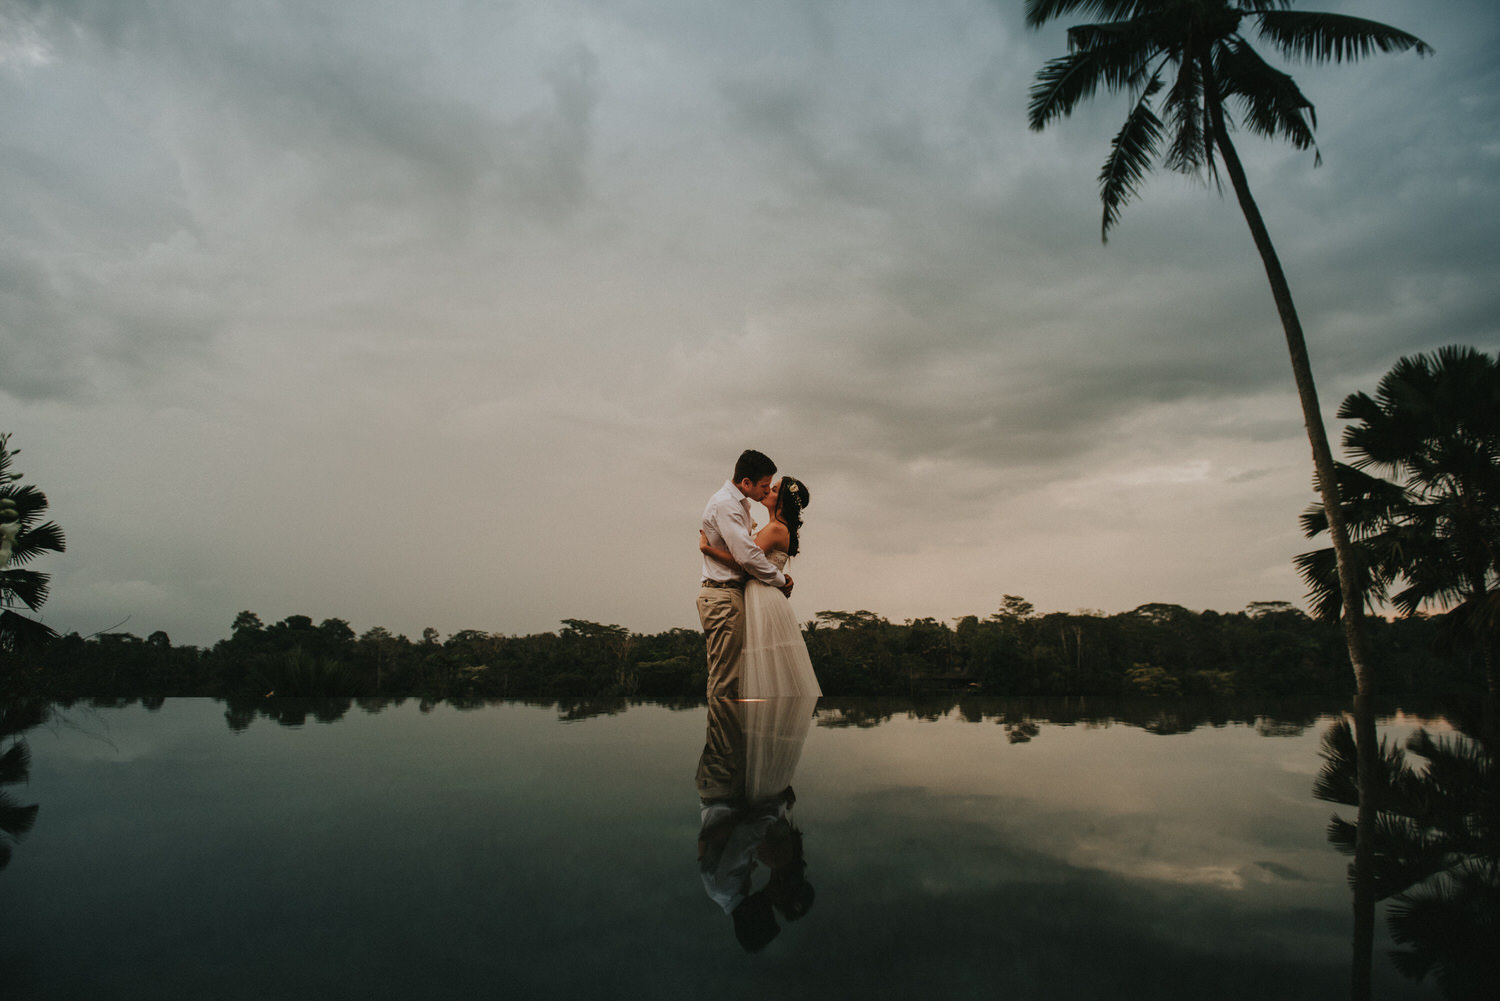 bali wedding - elopement - ubud wedding - diktatphotography - olga + Jason - 74